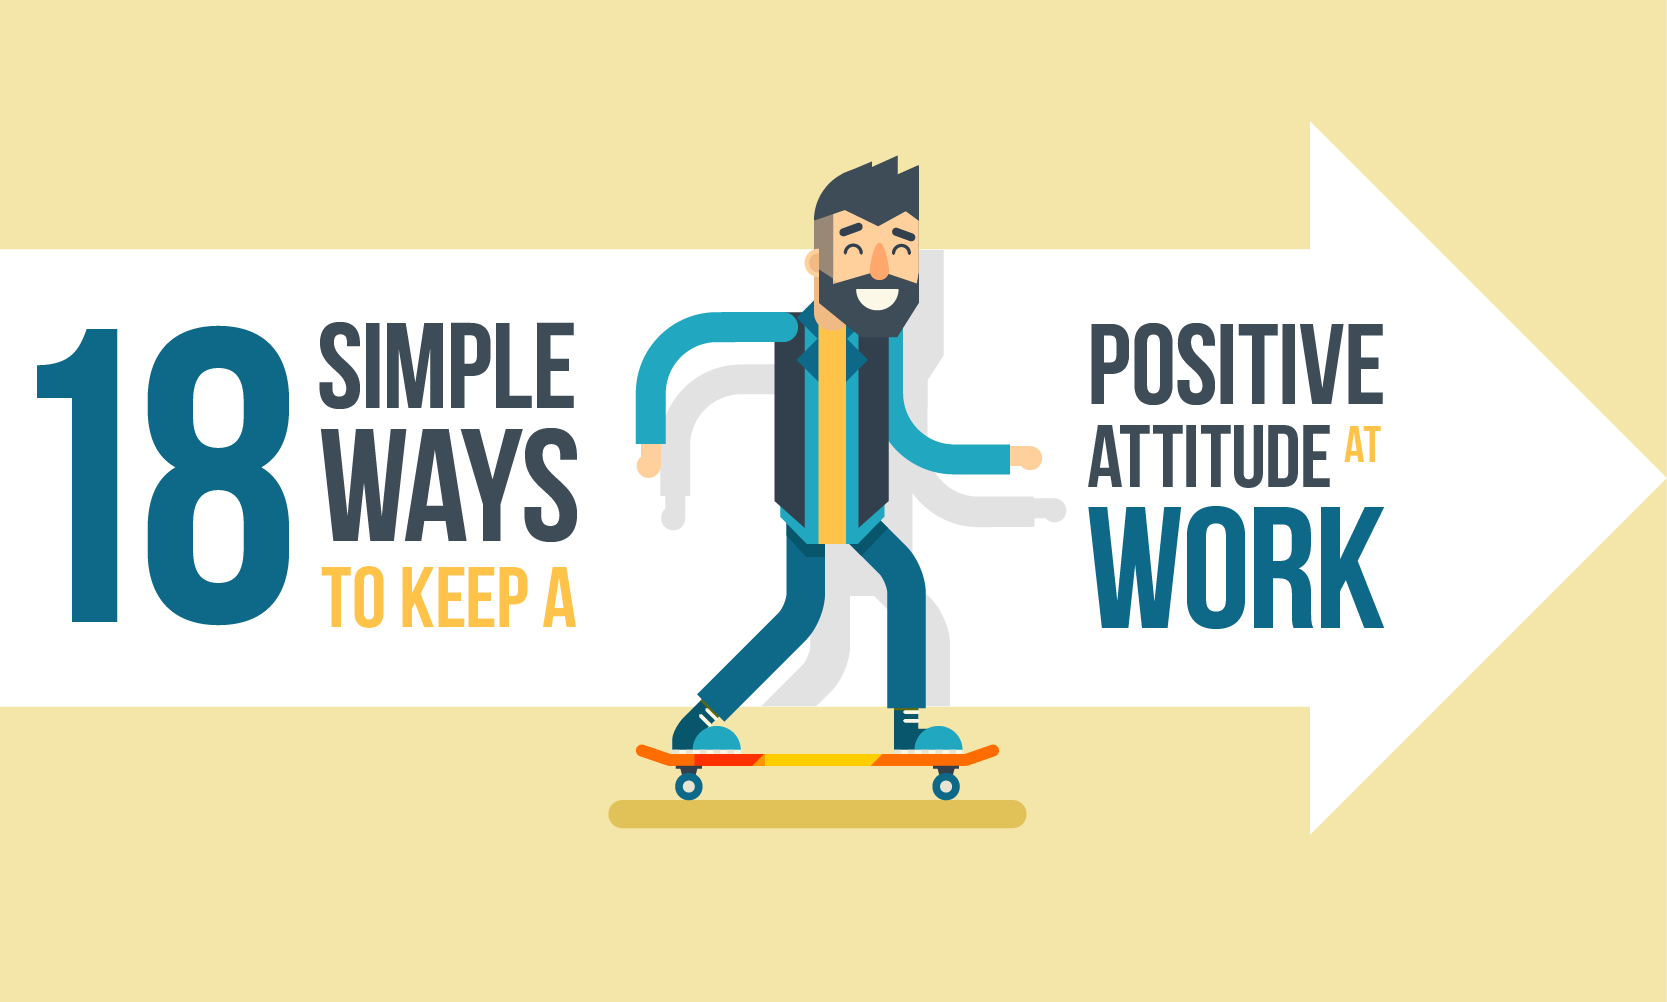 18 Simple Ways to Keep a Positive Attitude at Work - When I Work